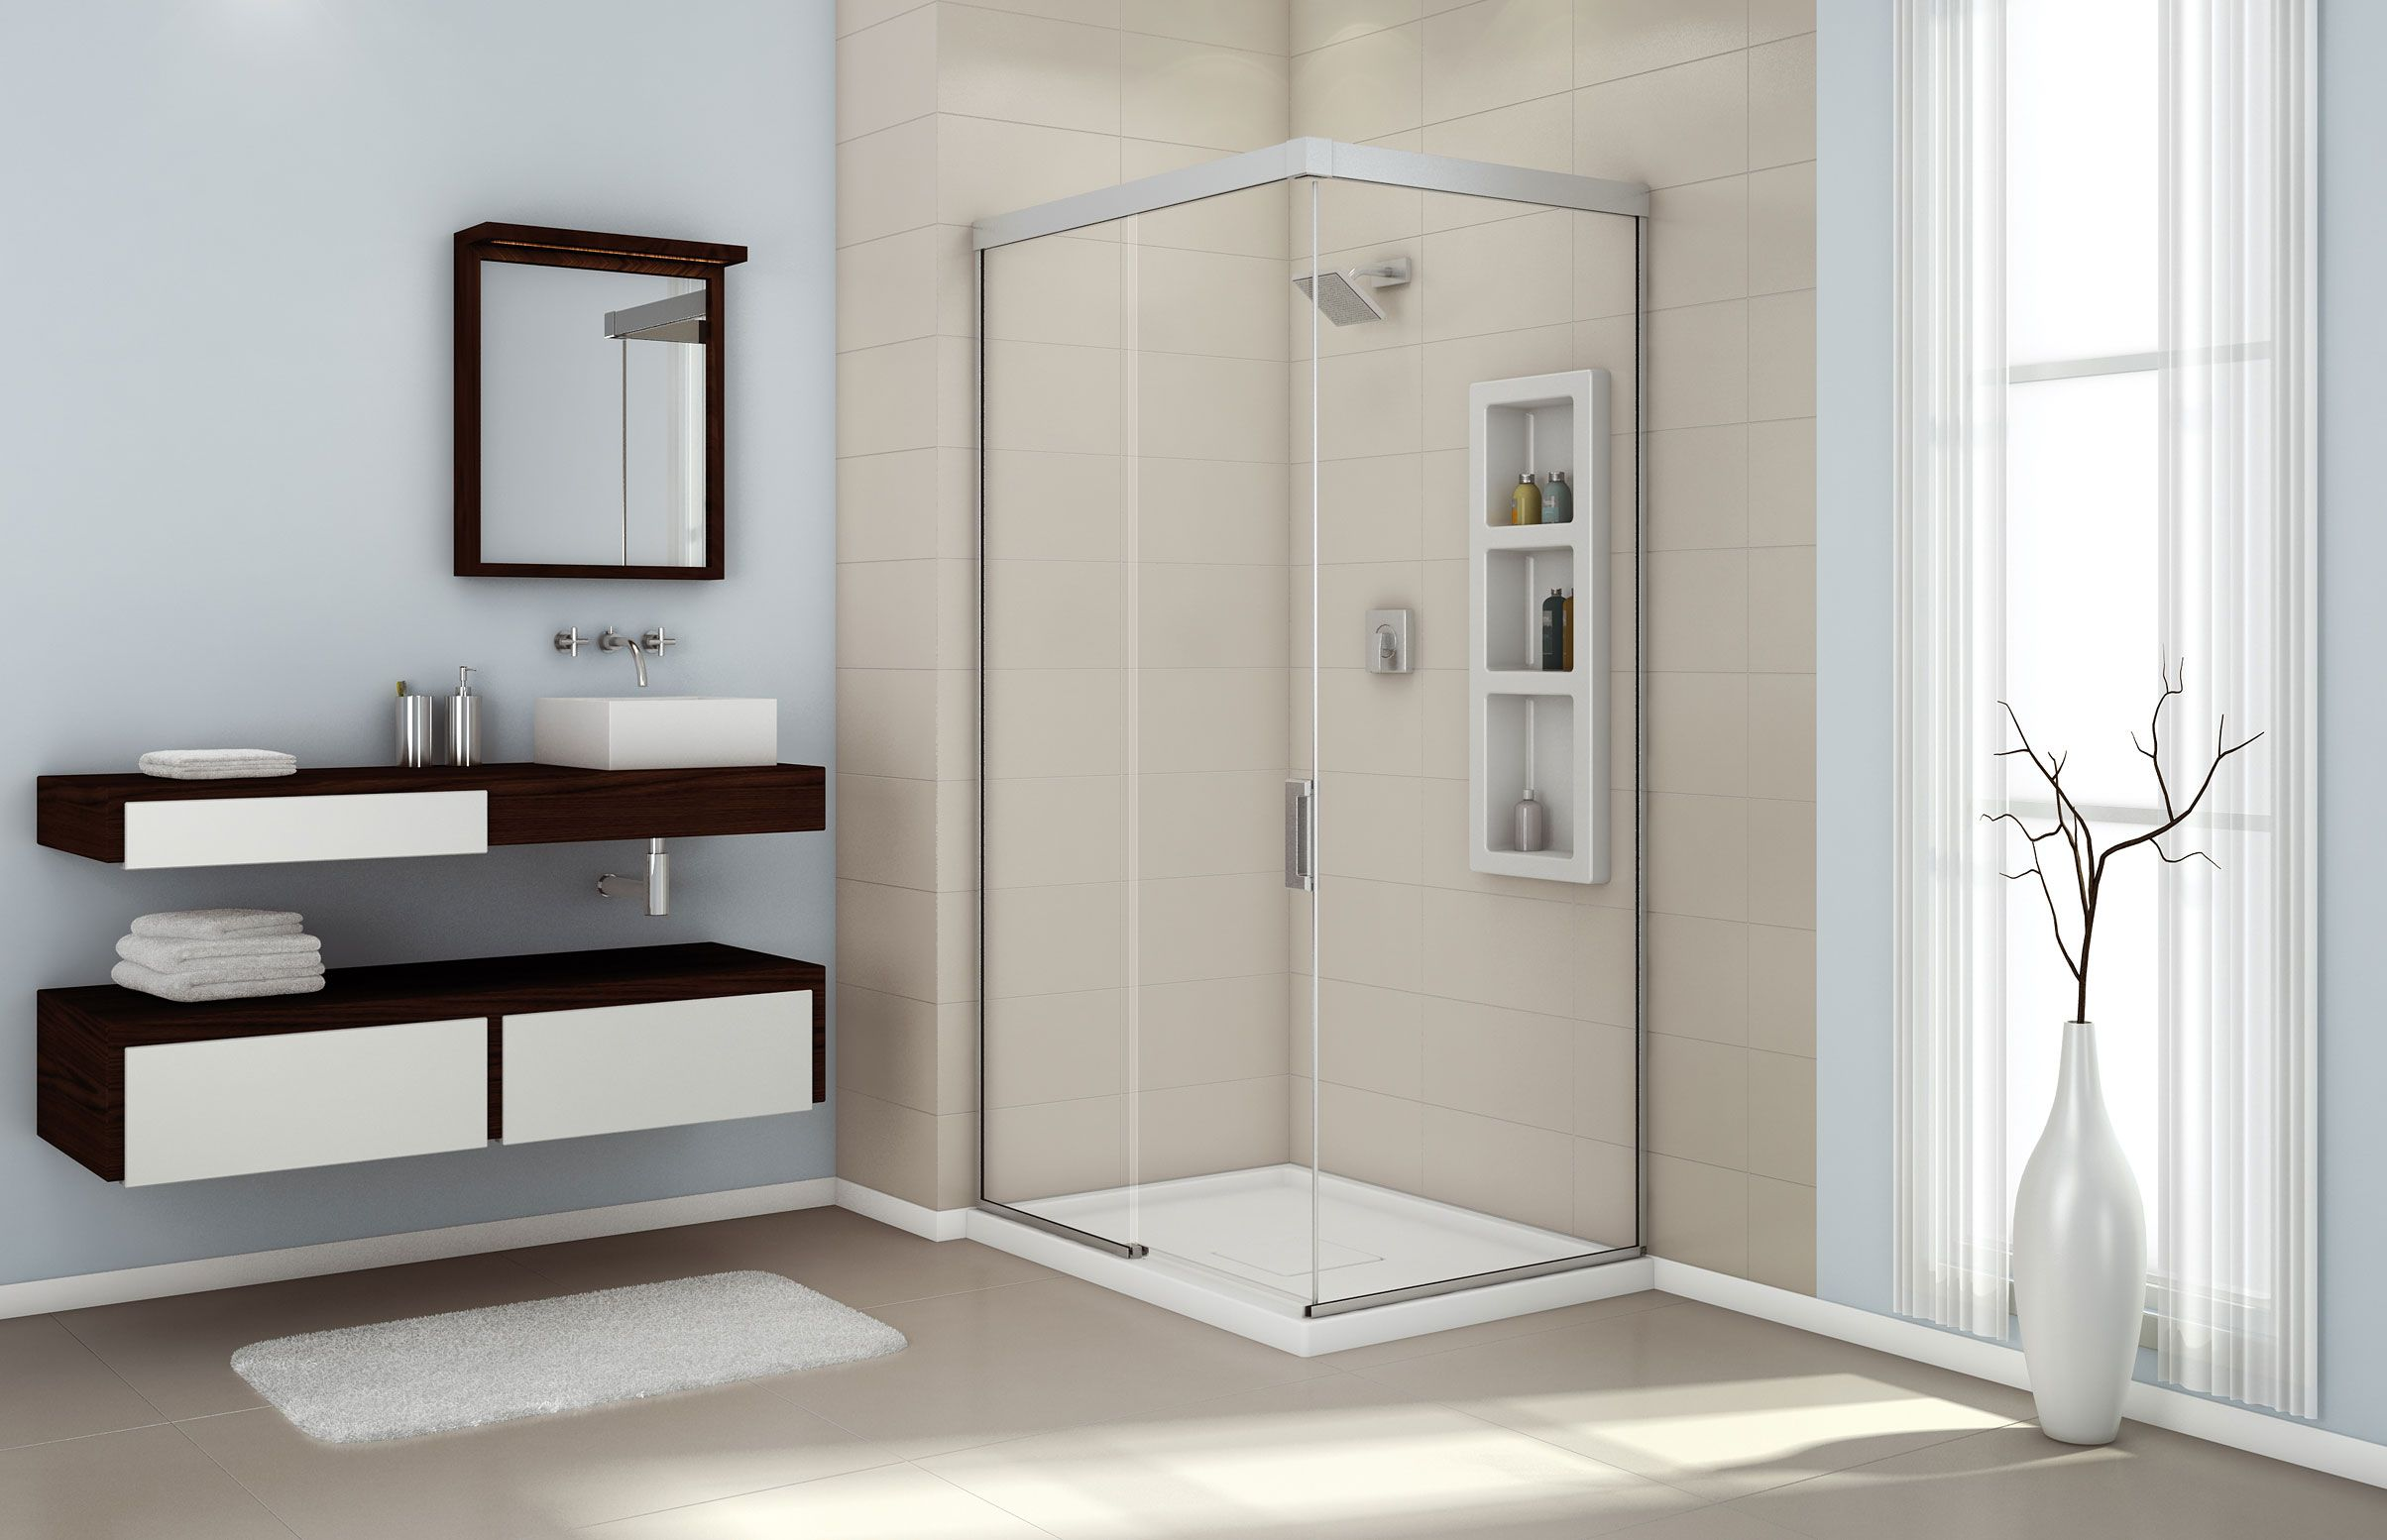 Evidence 4836 C Corner or Glass enclosures shower - Advanta by MAAX ...